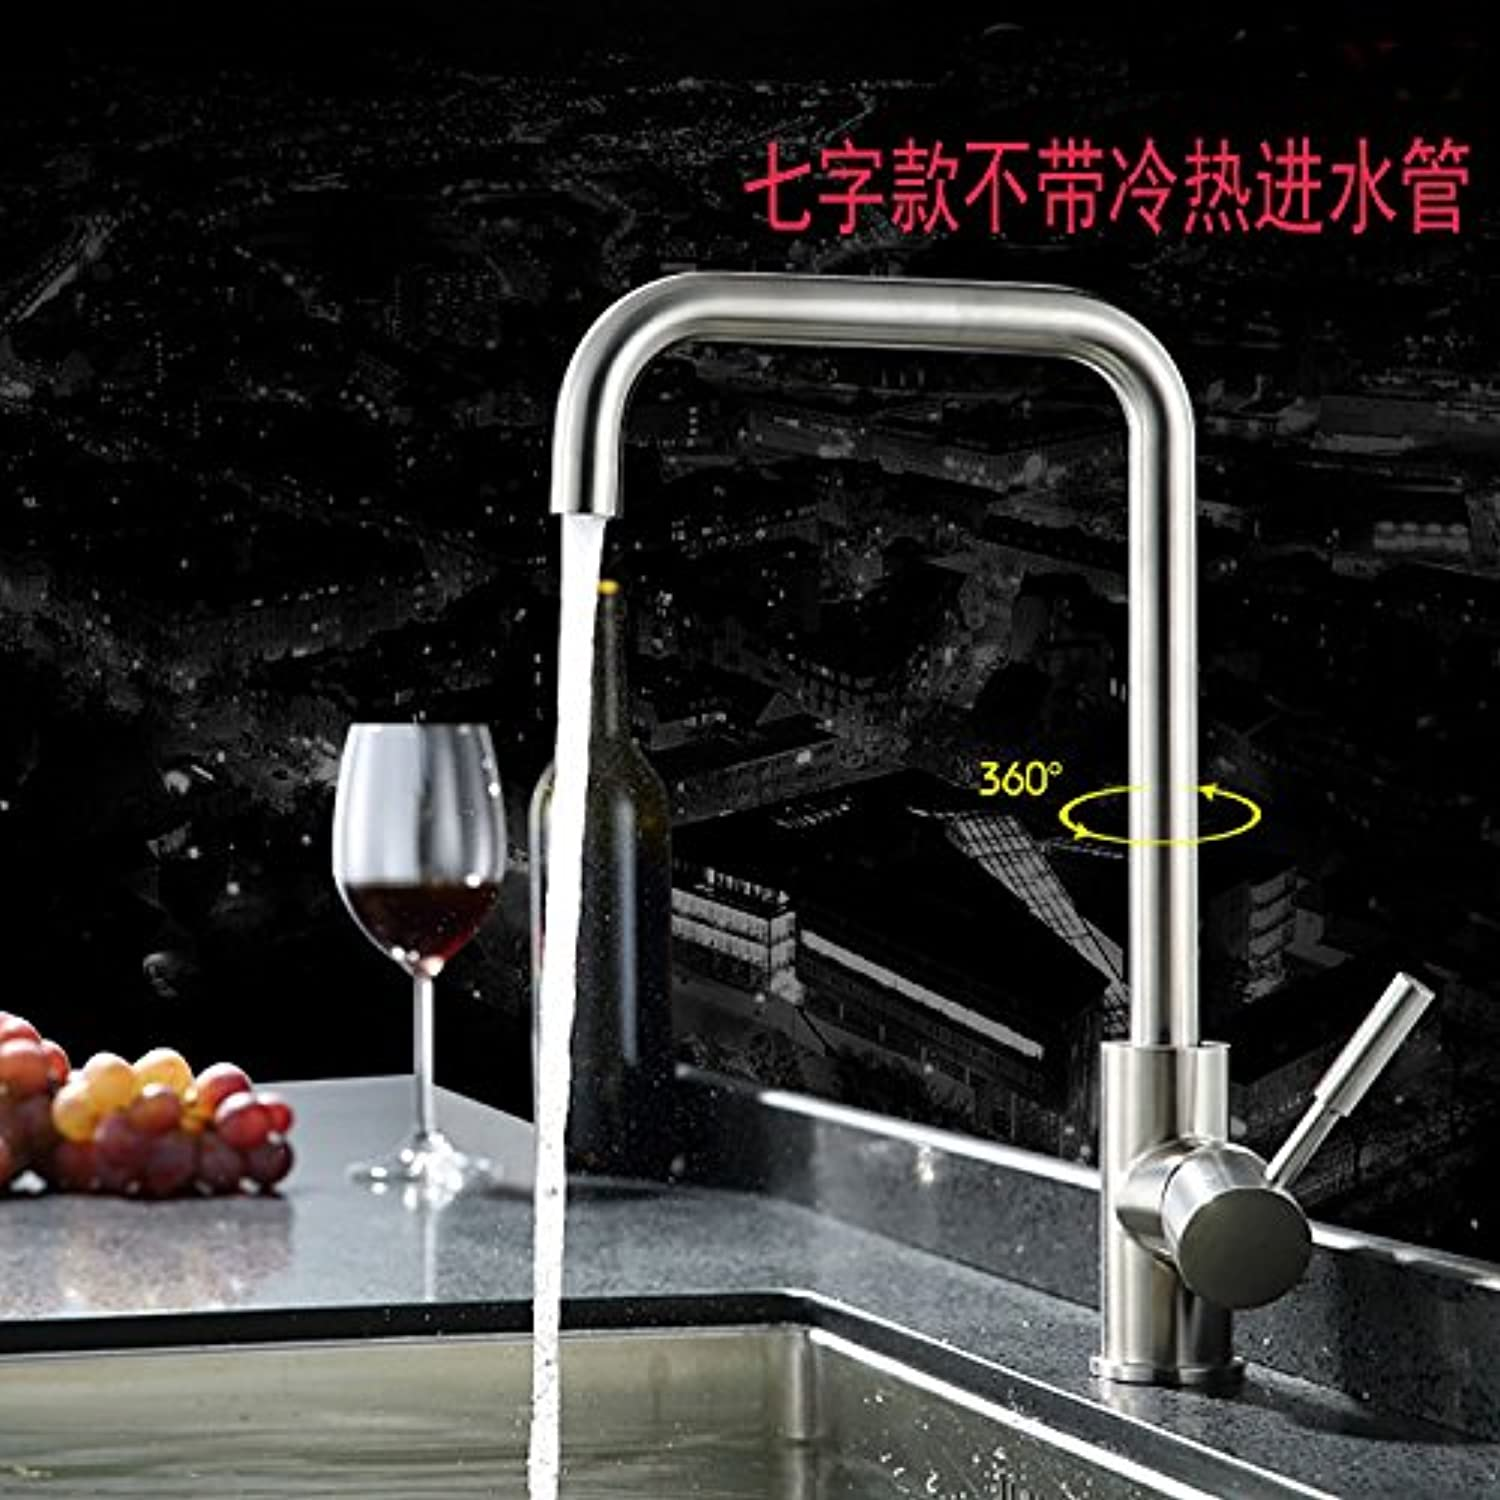 Gyps Faucet Basin Tap Waterfall Faucet Kitchen faucet single cold dish washing basin redation brushed sink 304 stainless steel kitchen faucet hot and cold 7 fields with hot and cold water inlet pipe